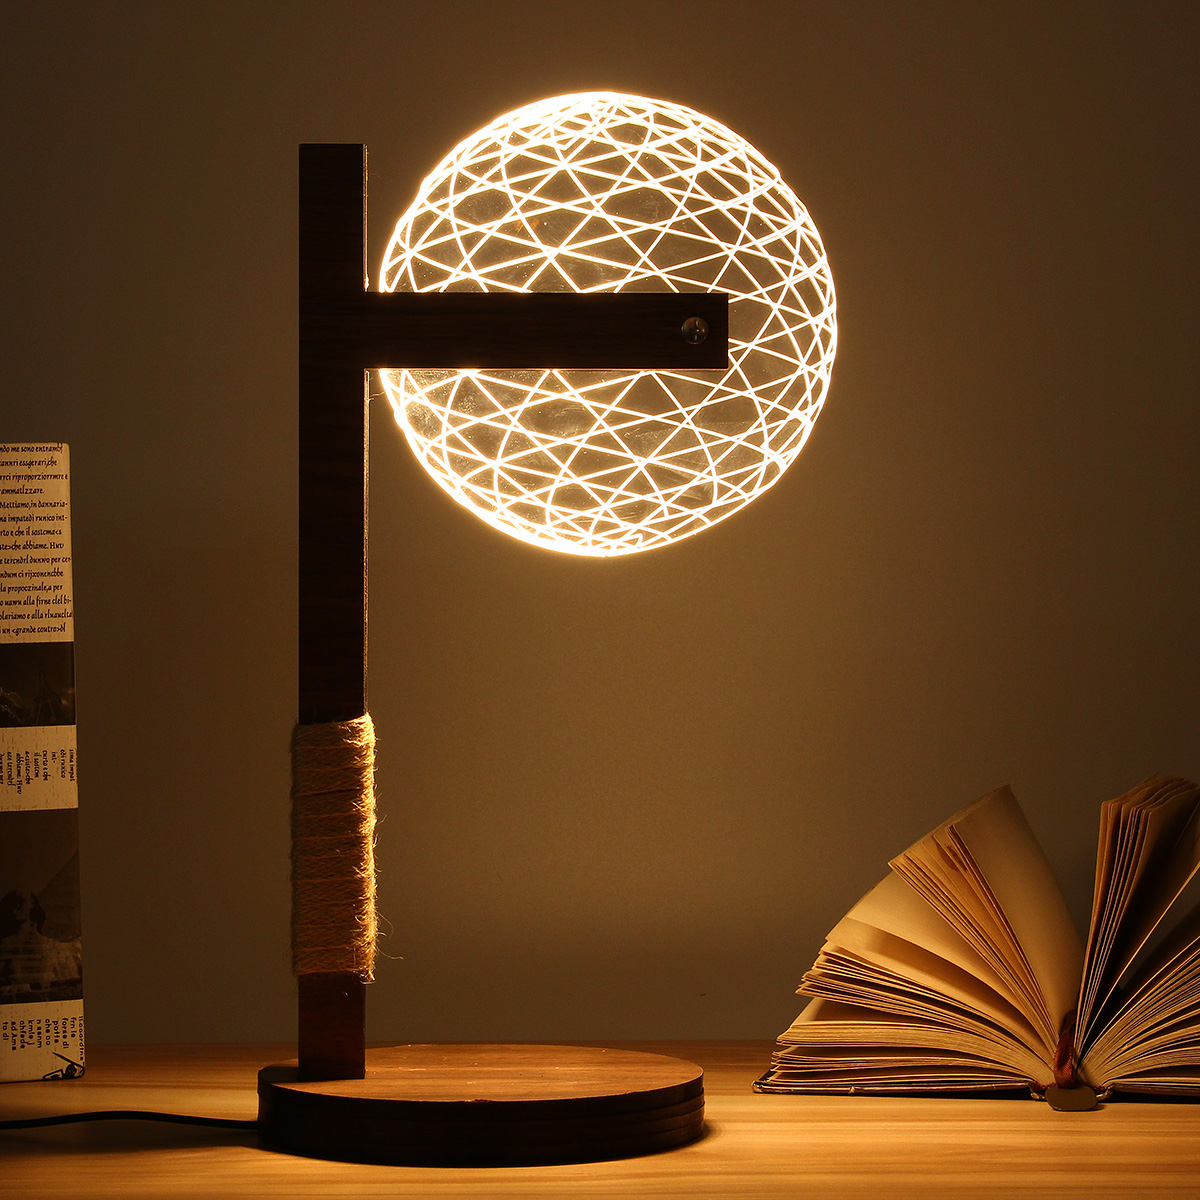 3D Round Ball Wood Stand Lamp Night Light Bedroom Table Desk Lamp Warm White Lighting Plug Connector Home Ornament adjustable owl shaped 3d wooden stand lamp night light bedroom table desk lamp warm white lighting plug connector home decor